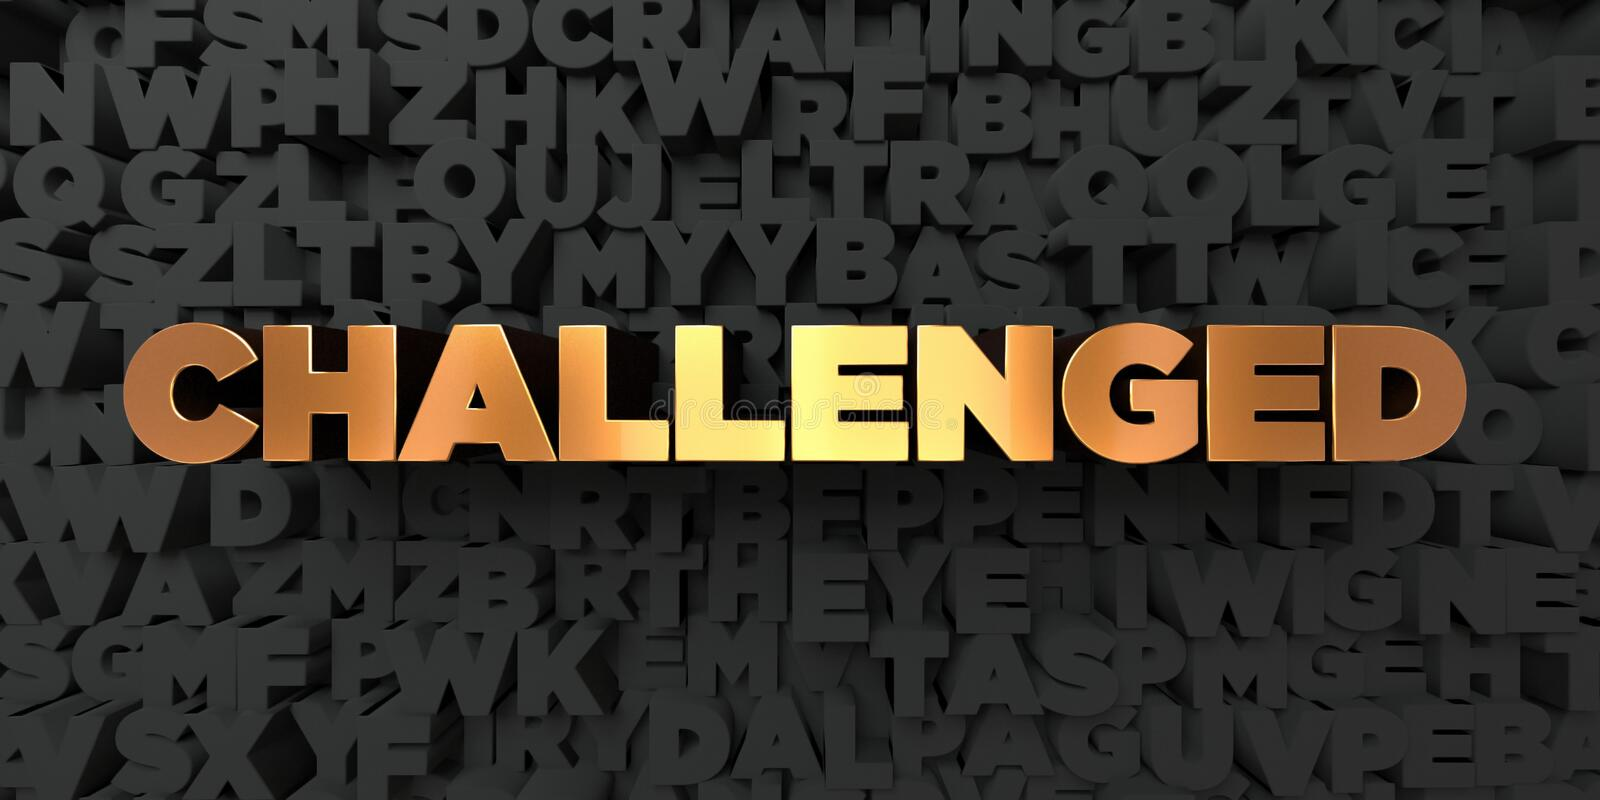 Challenged - Gold text on black background - 3D rendered royalty free stock picture. This image can be used for an online website banner ad or a print postcard royalty free illustration